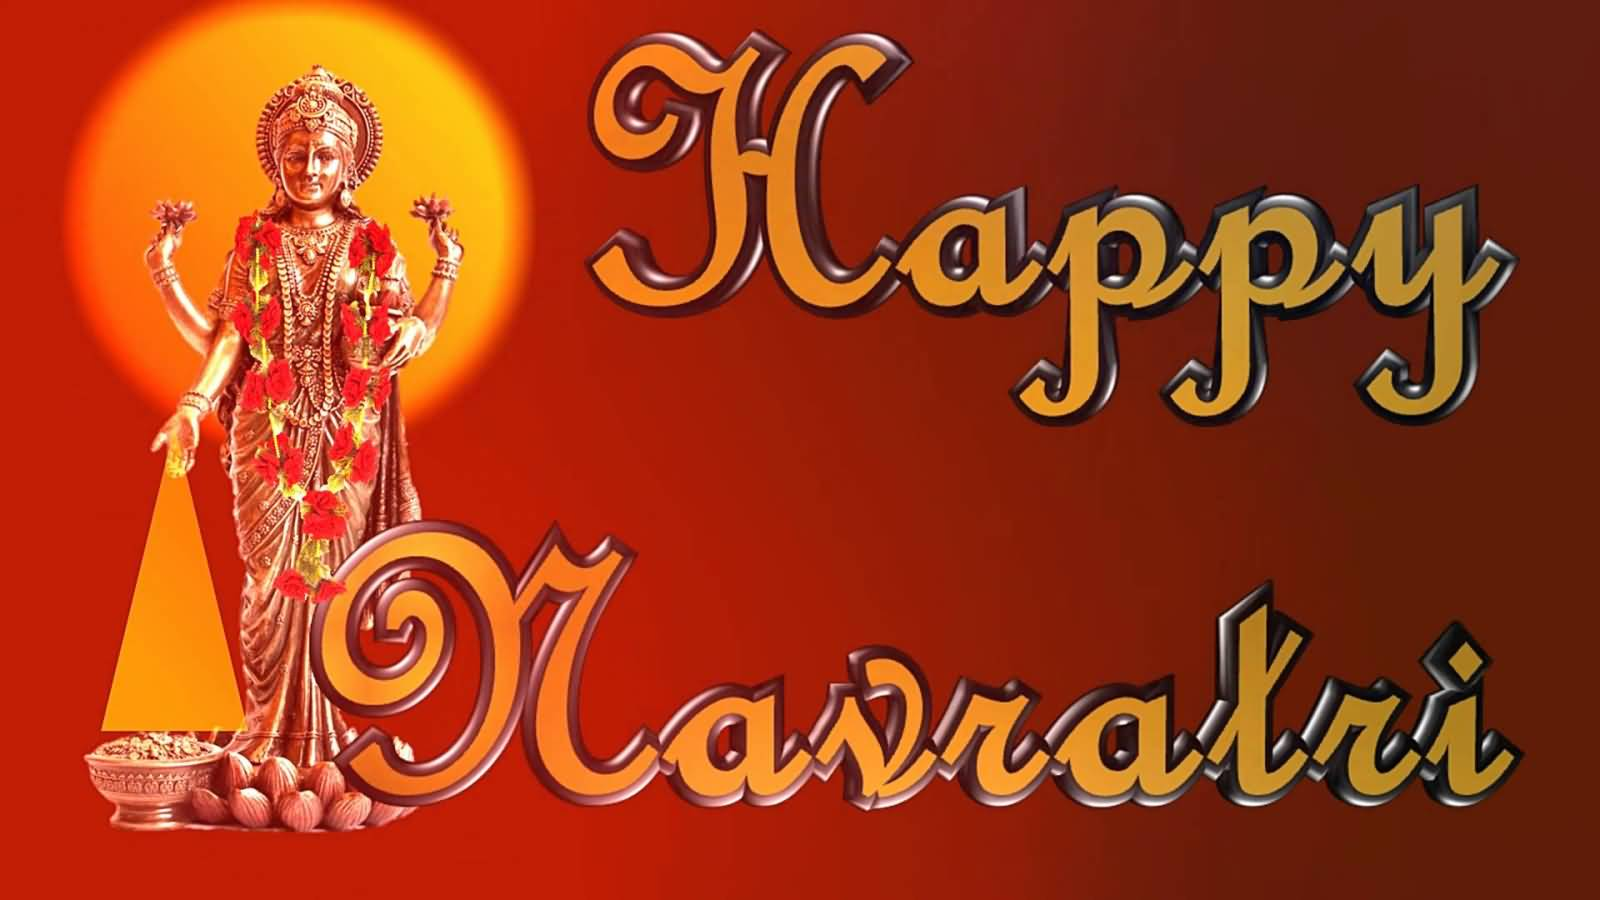 30 most beautiful happy navratri greeting images and photos funnyexpo beautiful happy navratri greeting picture kristyandbryce Choice Image